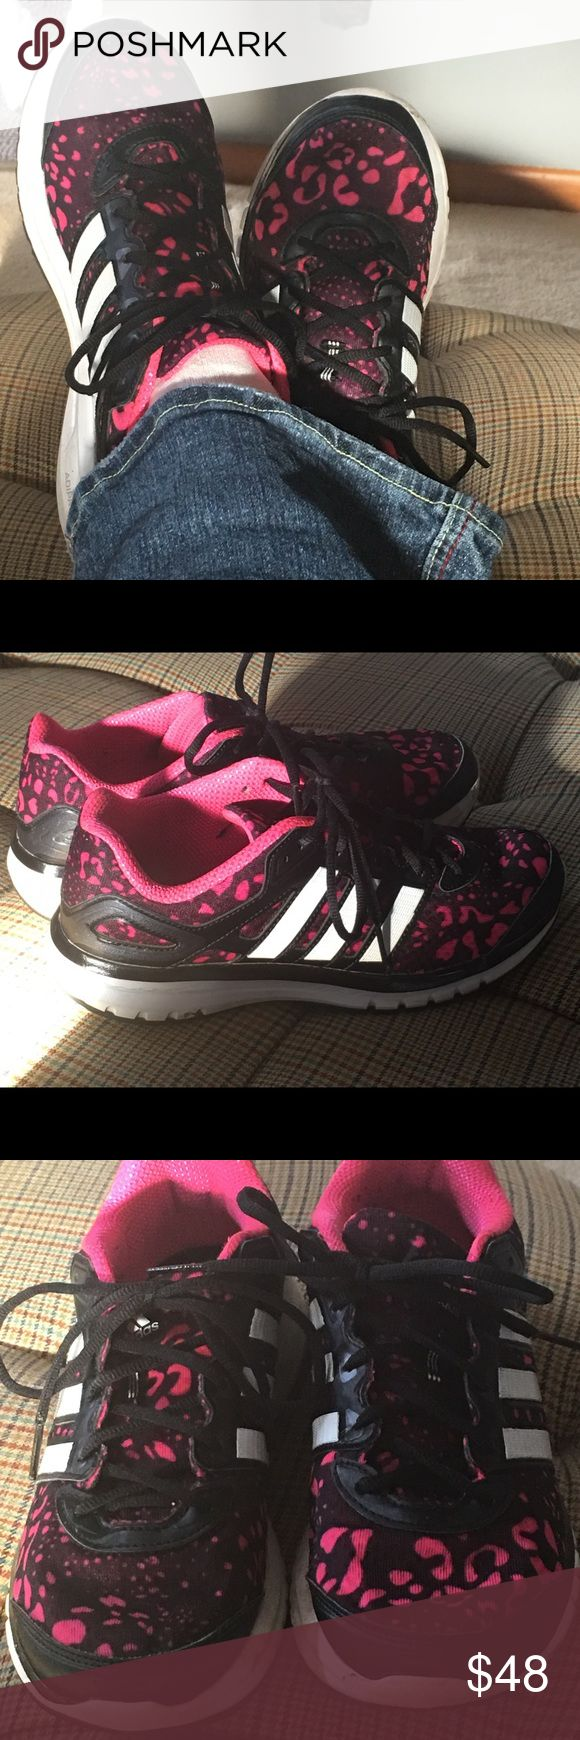 Adidas Pink/Black size 9 Ladies shoes Super cute adidas spotted shoes. Gently used. Fast shipping. Adidas Shoes Athletic Shoes